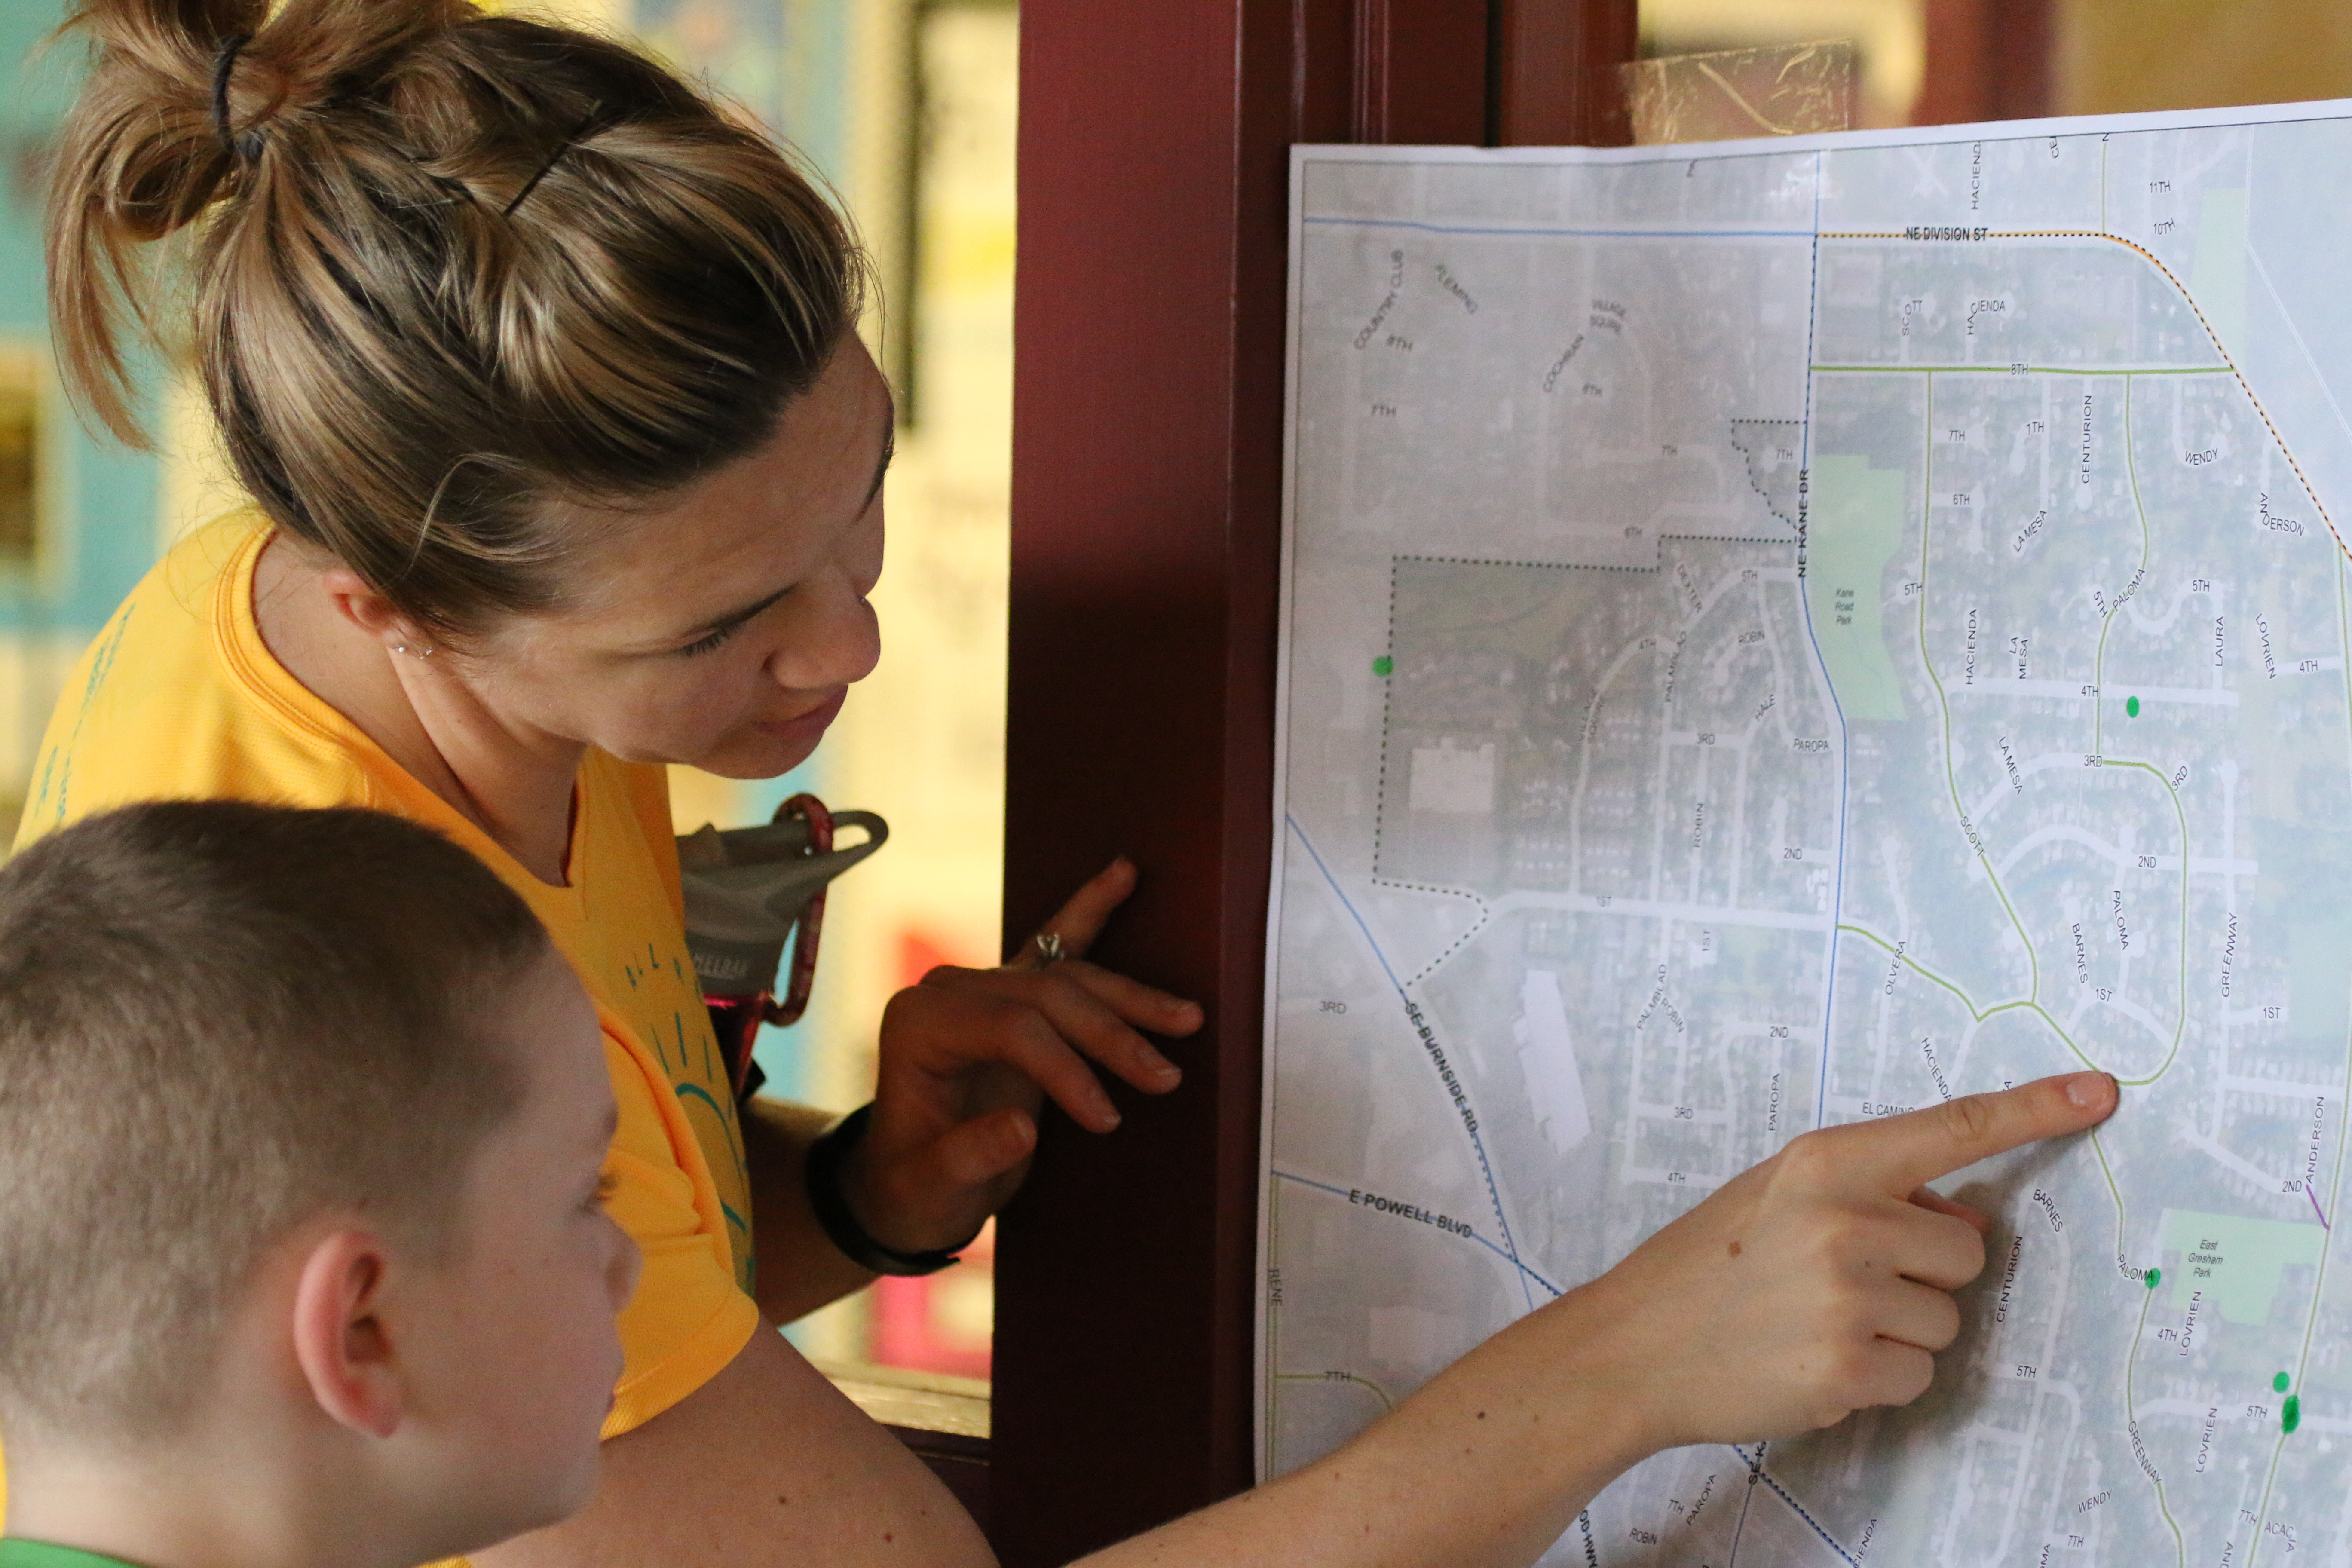 Woman points to a map and talks to a boy who is looking at the map.